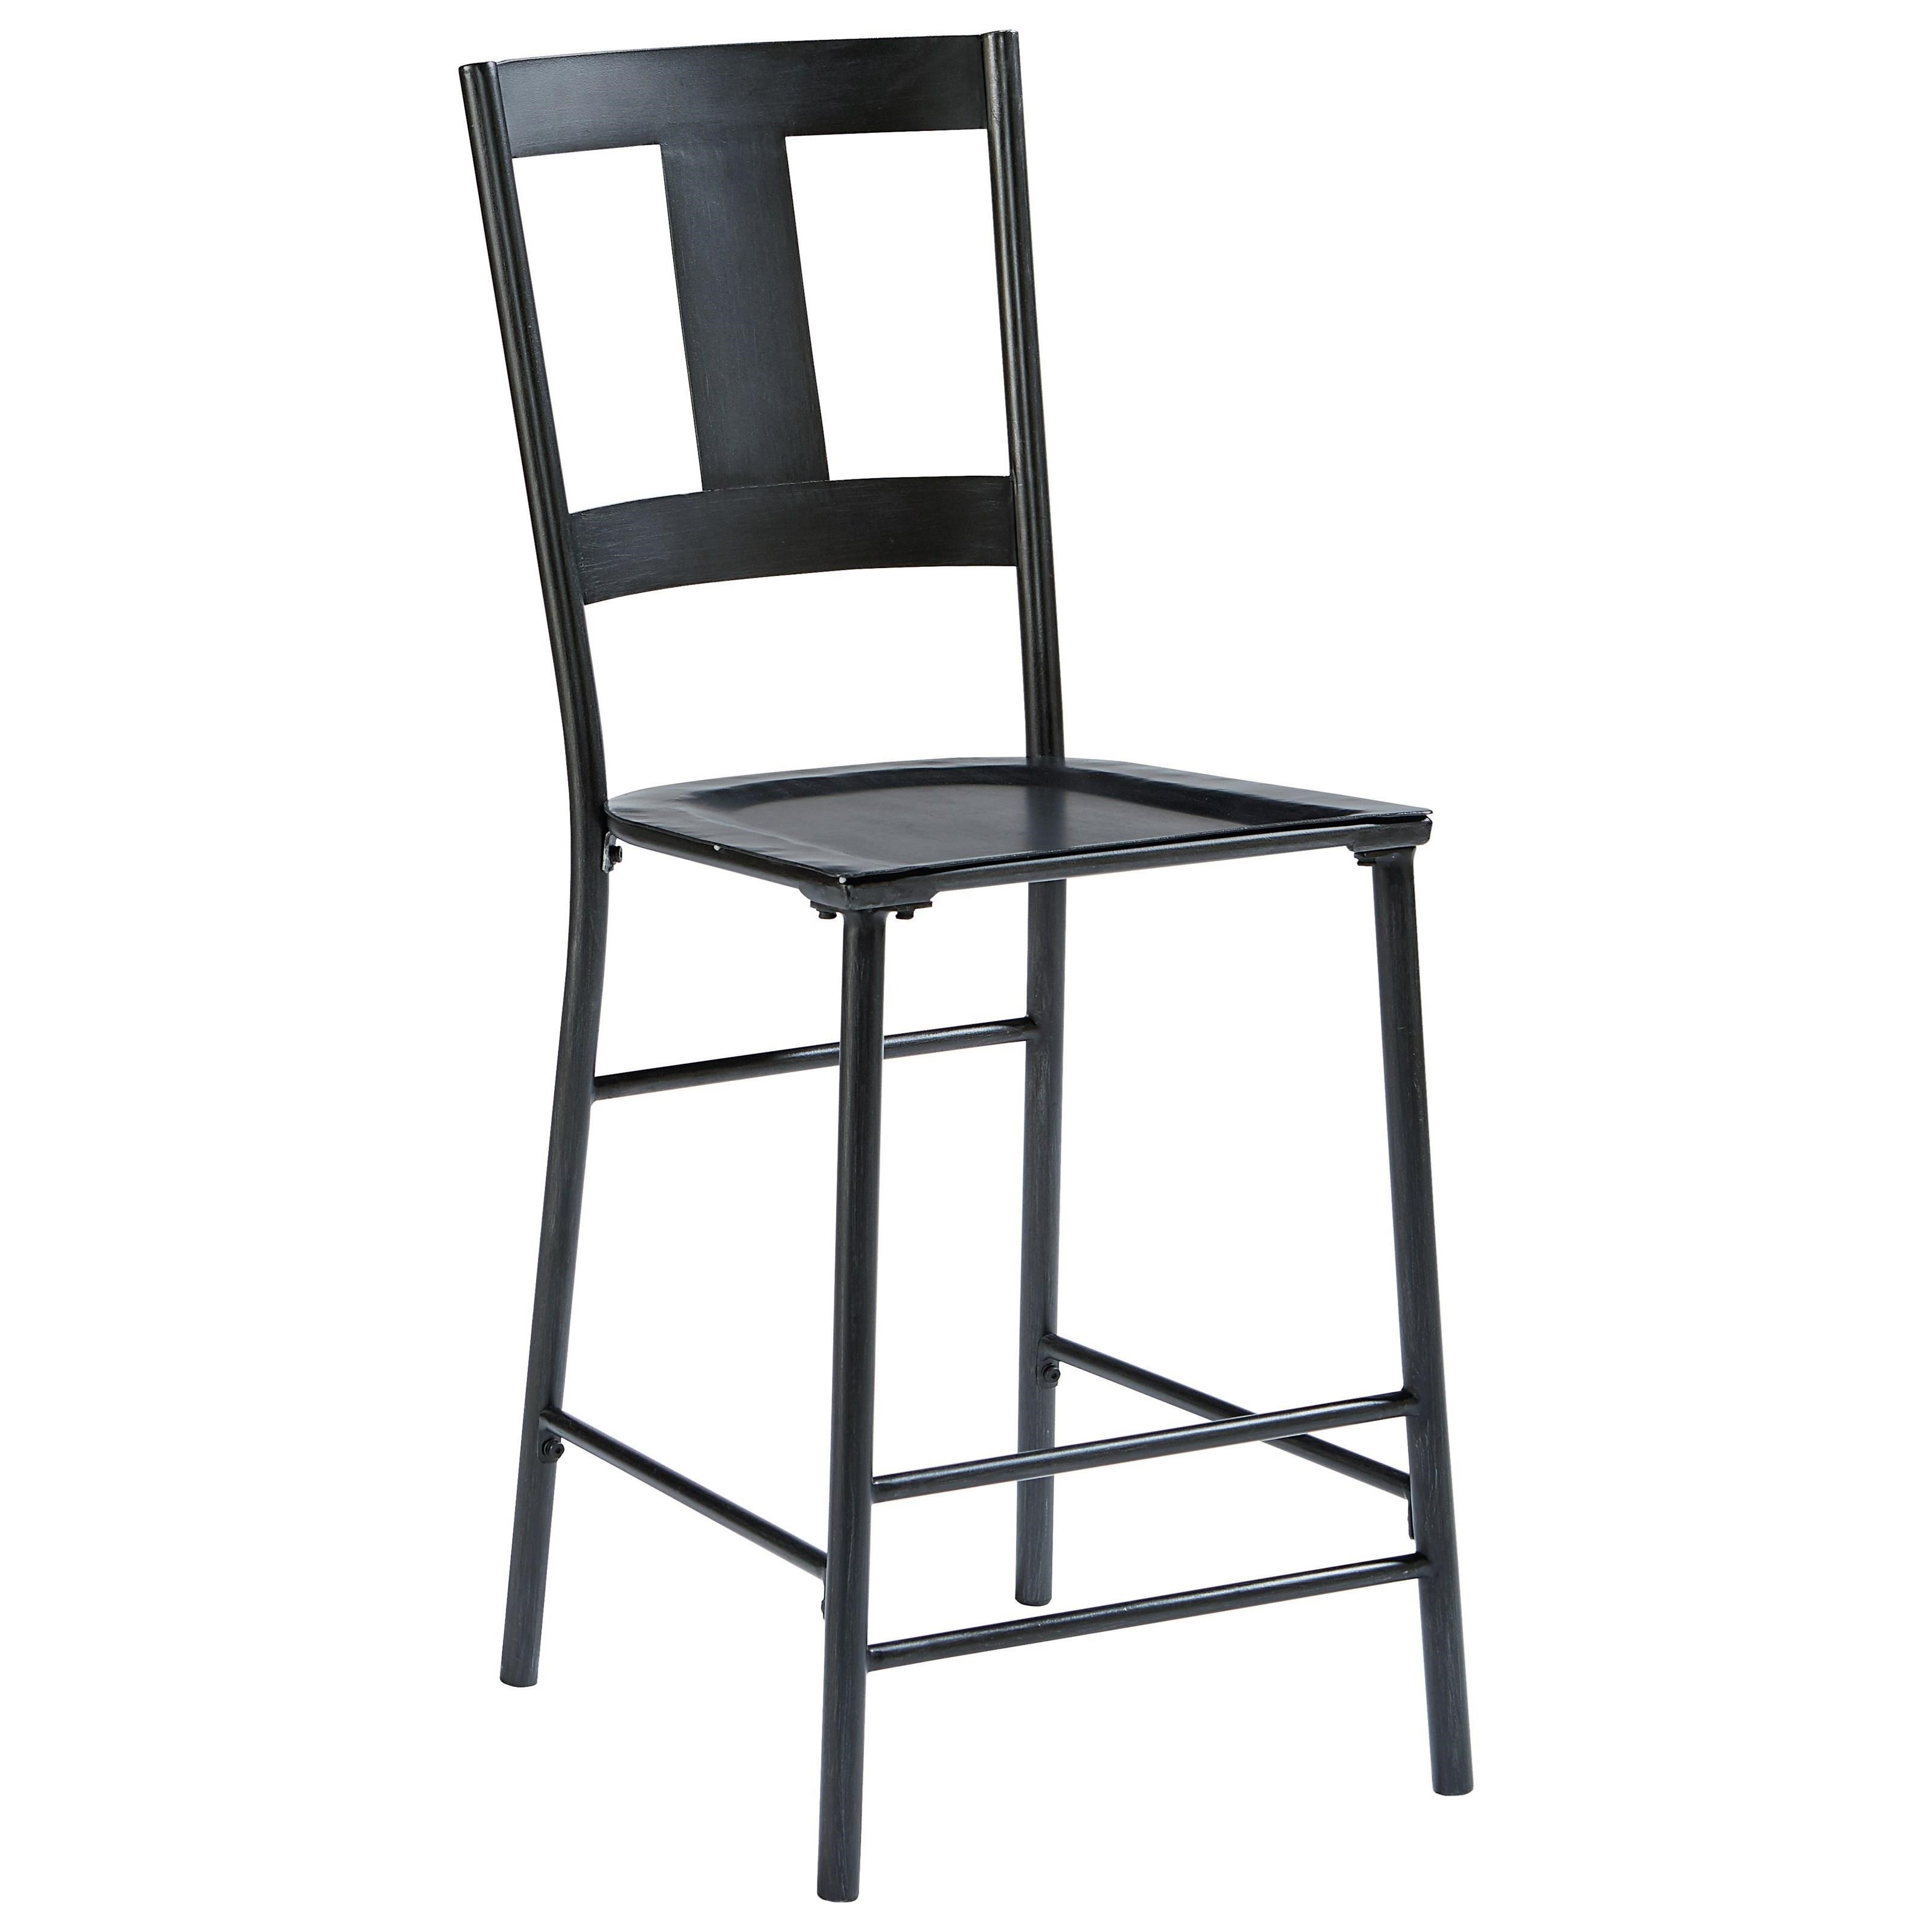 industrial metal chairs white wingback chair slipcovers magnolia home by joanna gaines and wood barstool with carbon finish